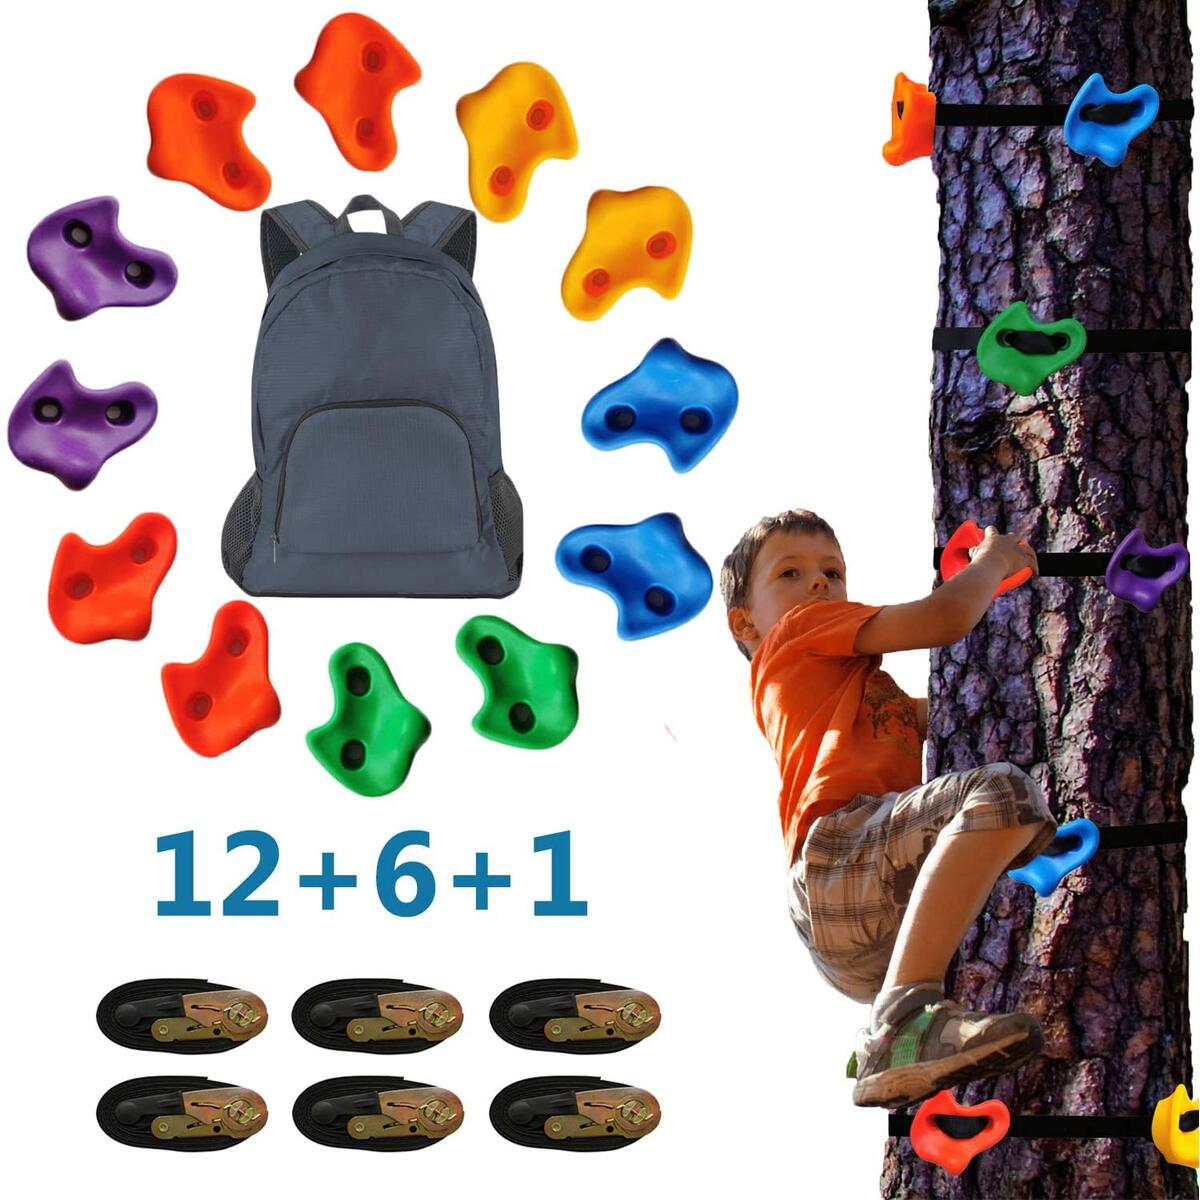 12 Ninja Tree Climbing Holds and 6 Ratchet Straps, for Outdoor Climber Ninja Warrior Obstacle Training; Backyard Rocks Climbing Playground Equipment for Kids and Adults